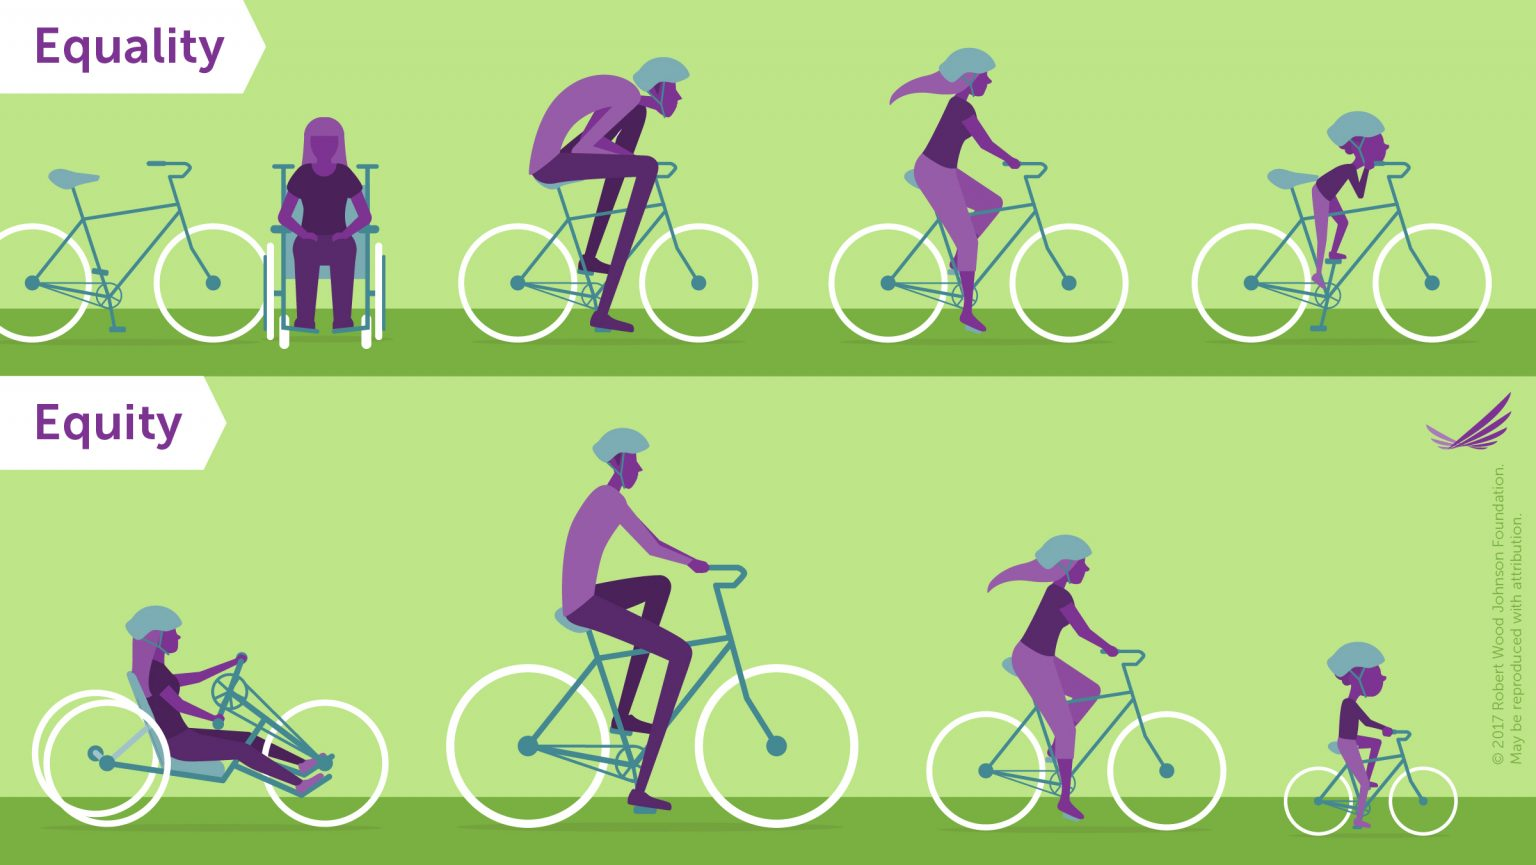 RWJF_bikes_equality_equity_PURPLE-1536x865